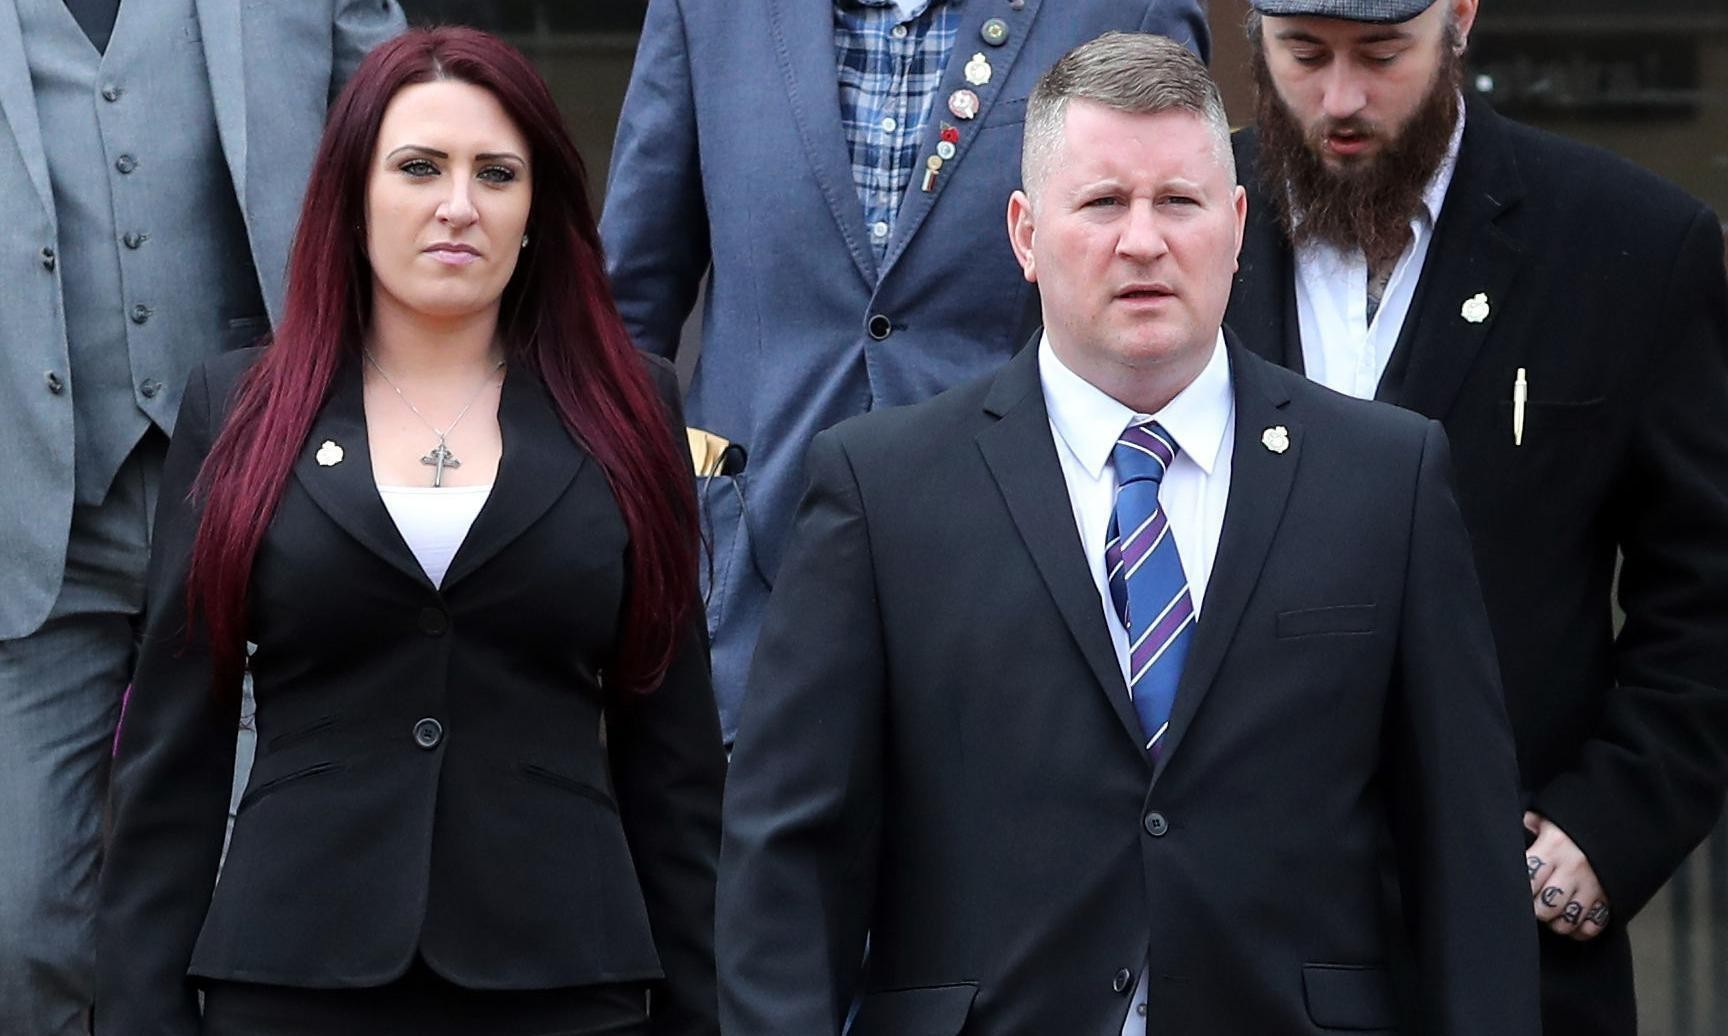 Britain First leaders jailed over anti-Muslim hate crimes